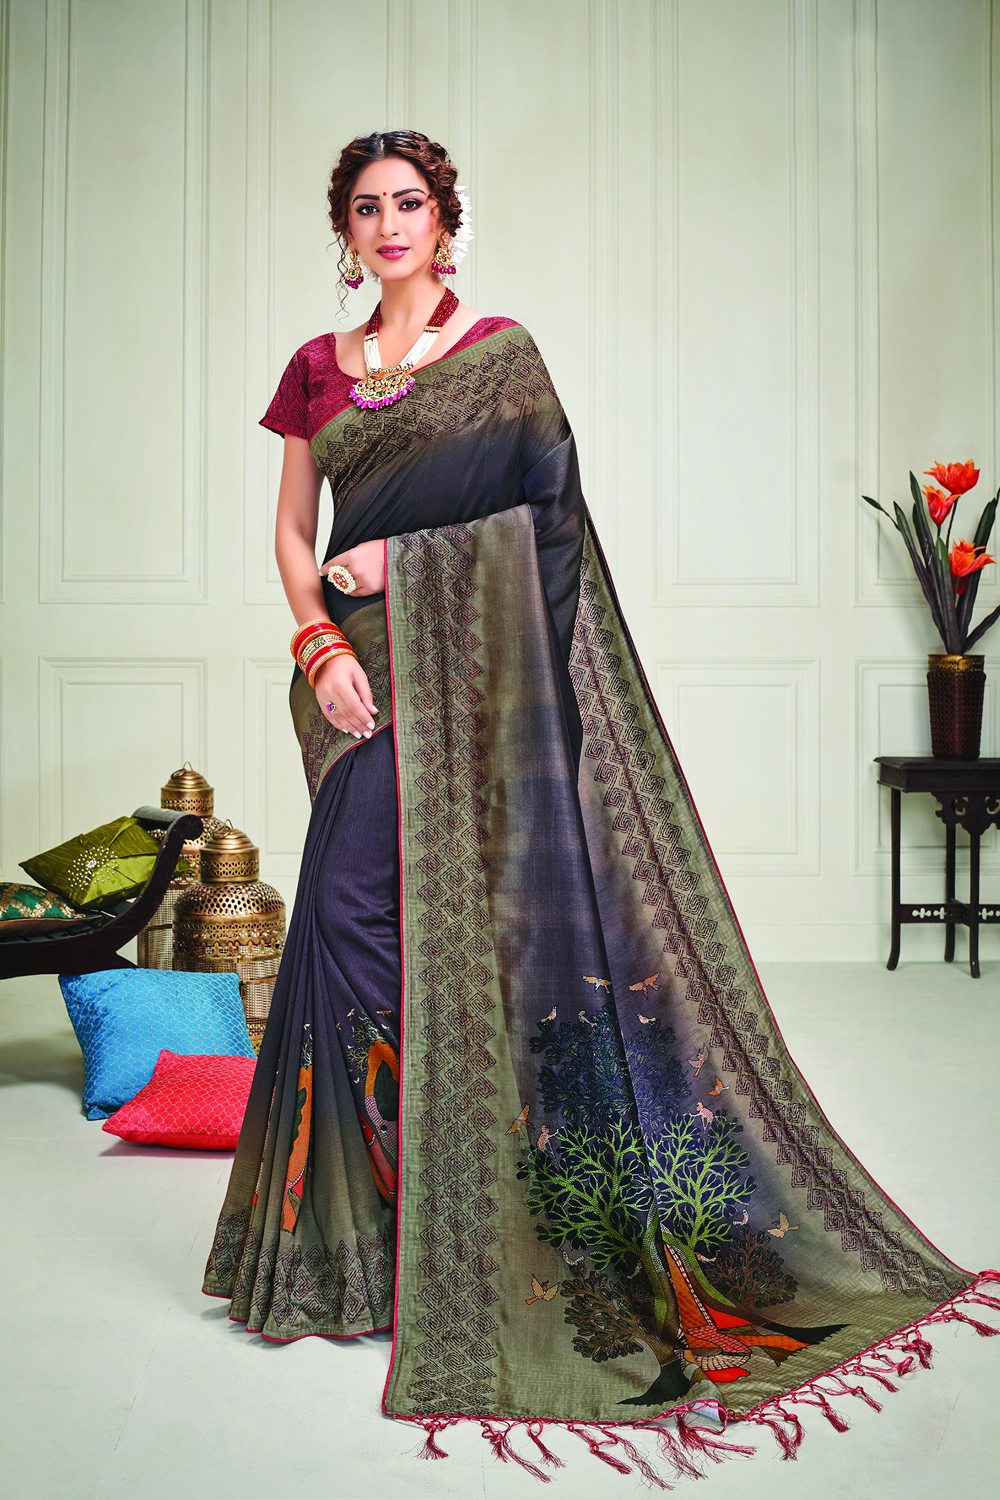 Emit a radiance of a graceful Indian woman in this particularly divine piece spruced with kalamkari-inspired print on the short pallu and kantha details  Drape It in a free-falling pallu drape to look ethereal